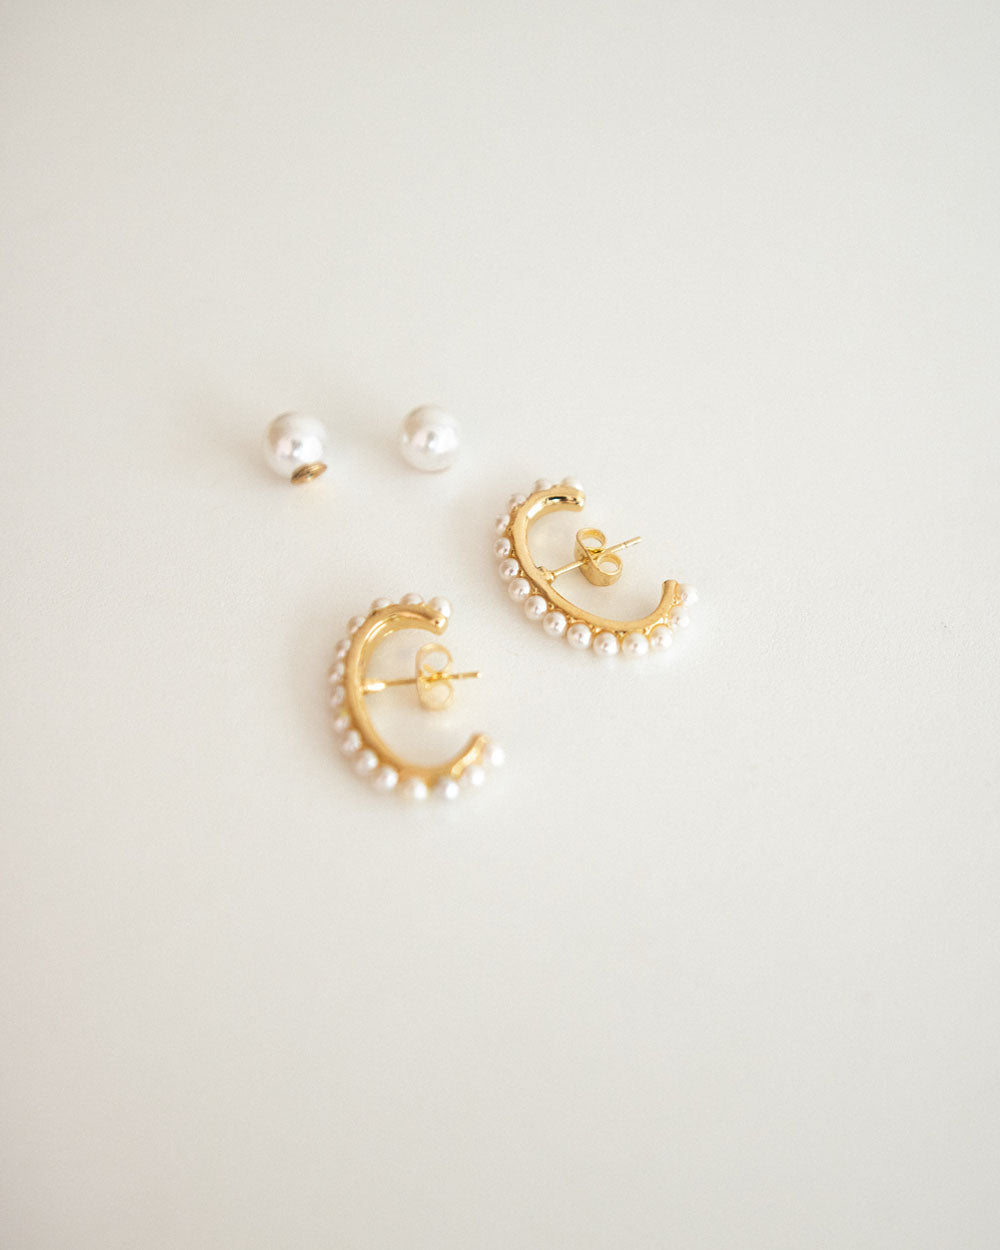 The Hexad's Yvette Suspender Ear studs with faux pearls